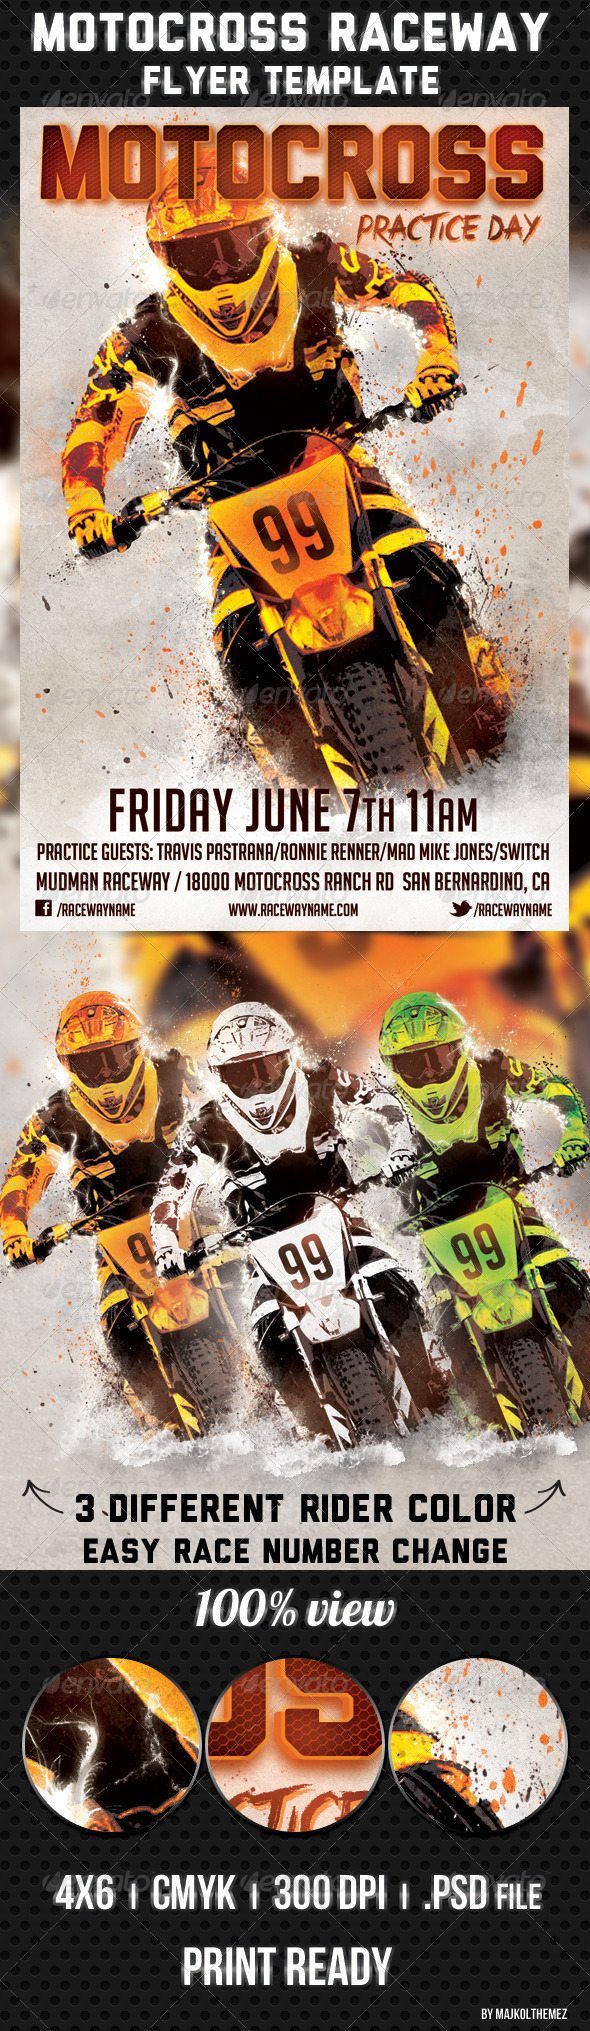 GraphicRiver Motocross Raceway Flyer Template 4796858